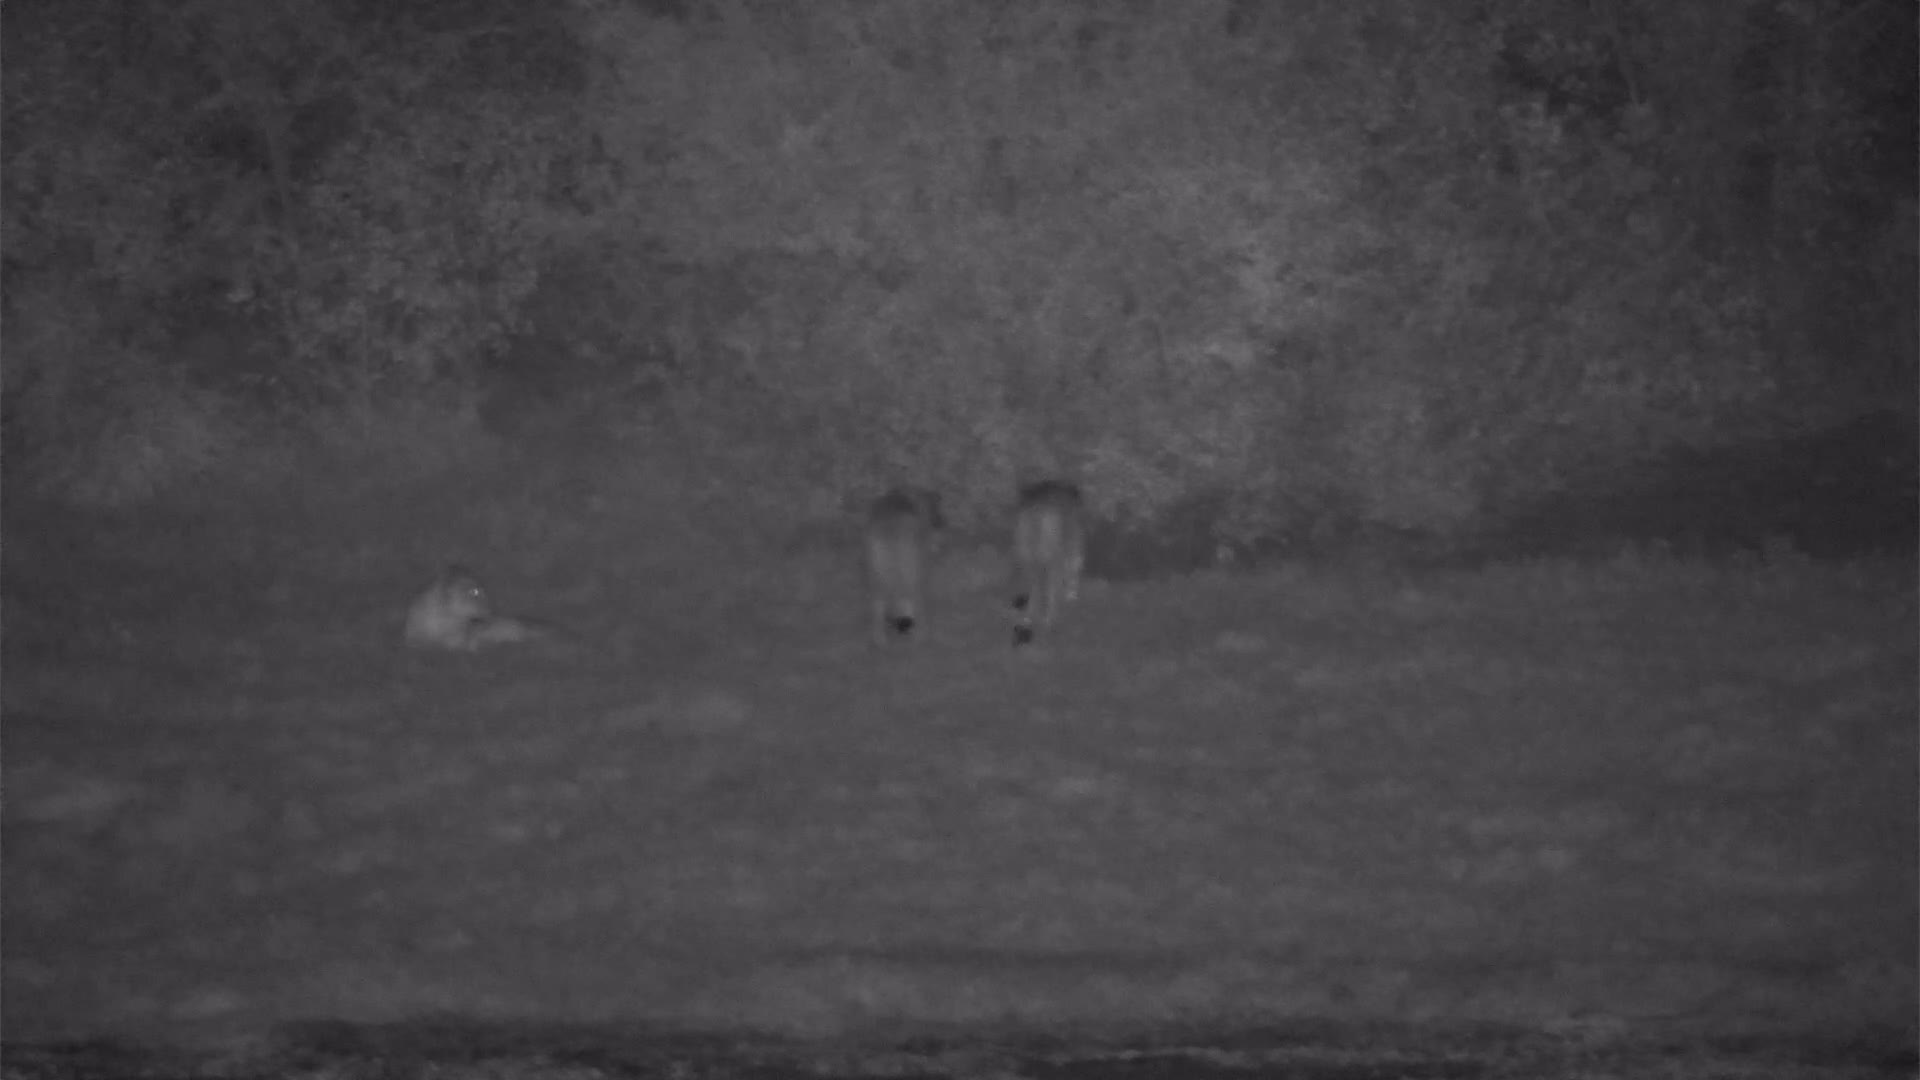 VIDEO: Lions resting and walking suddenly in the thicket